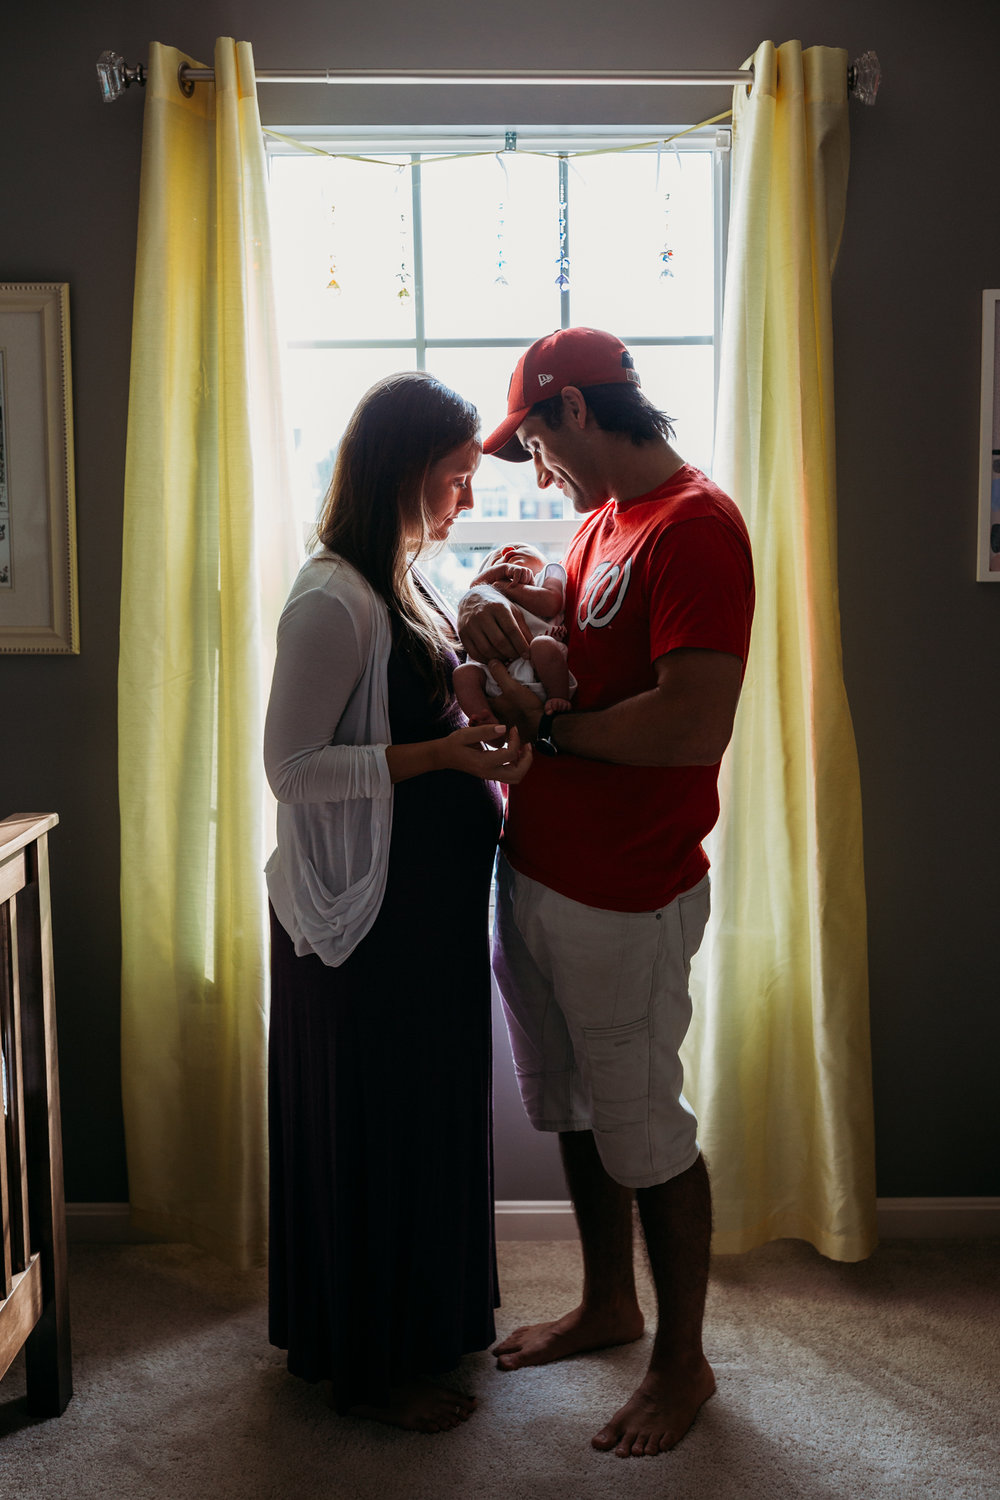 couple standing in front of a window holding newborn baby boy